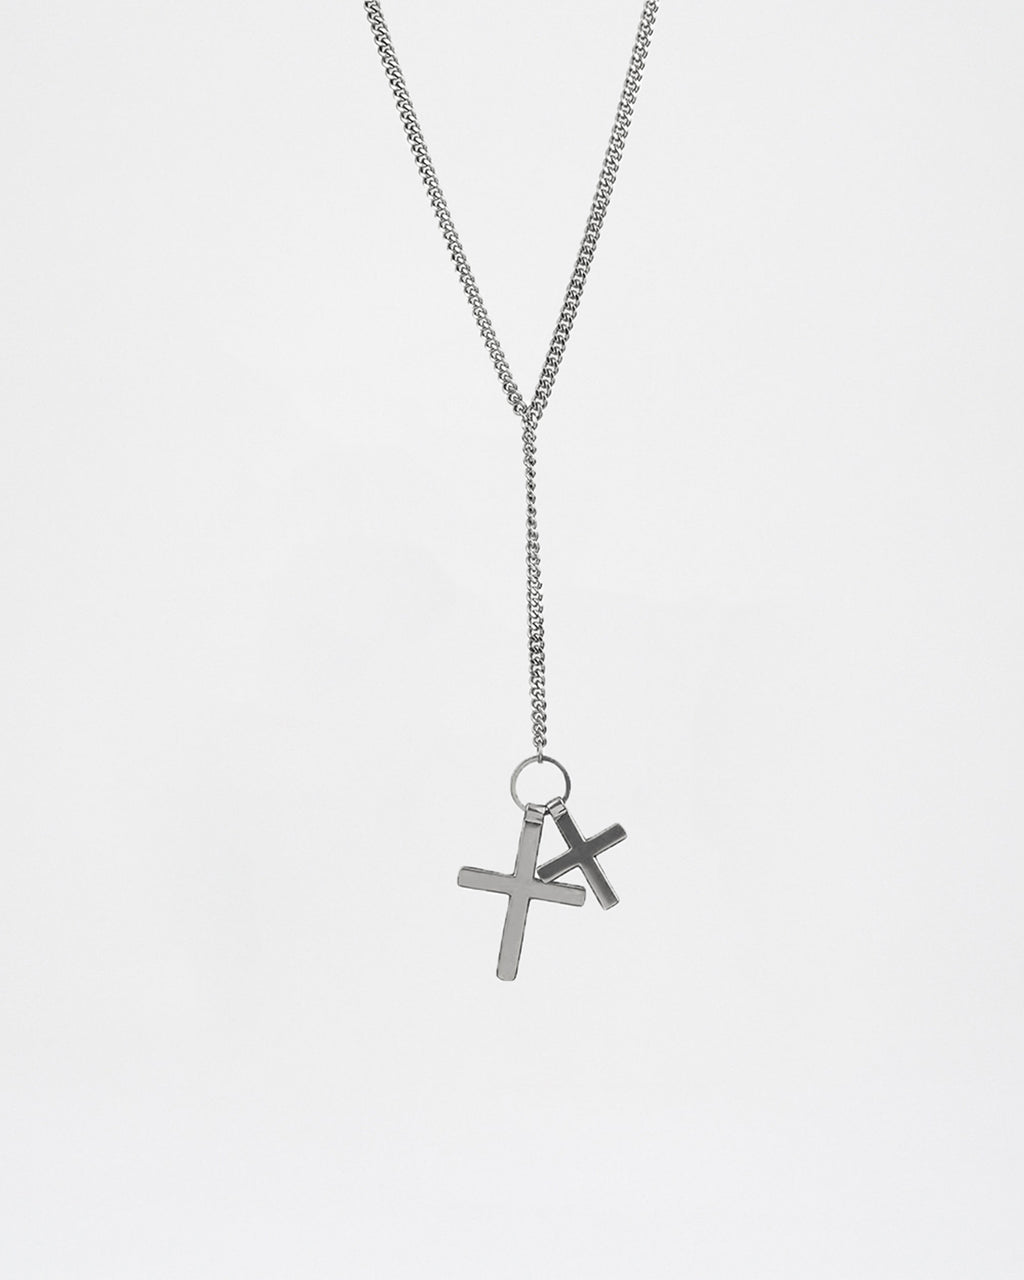 NM01511 - Soft Cross Y-Necklace - accessories - jewelry - this long silver necklace features two crosses. It's a great piece to layer with most outfits.